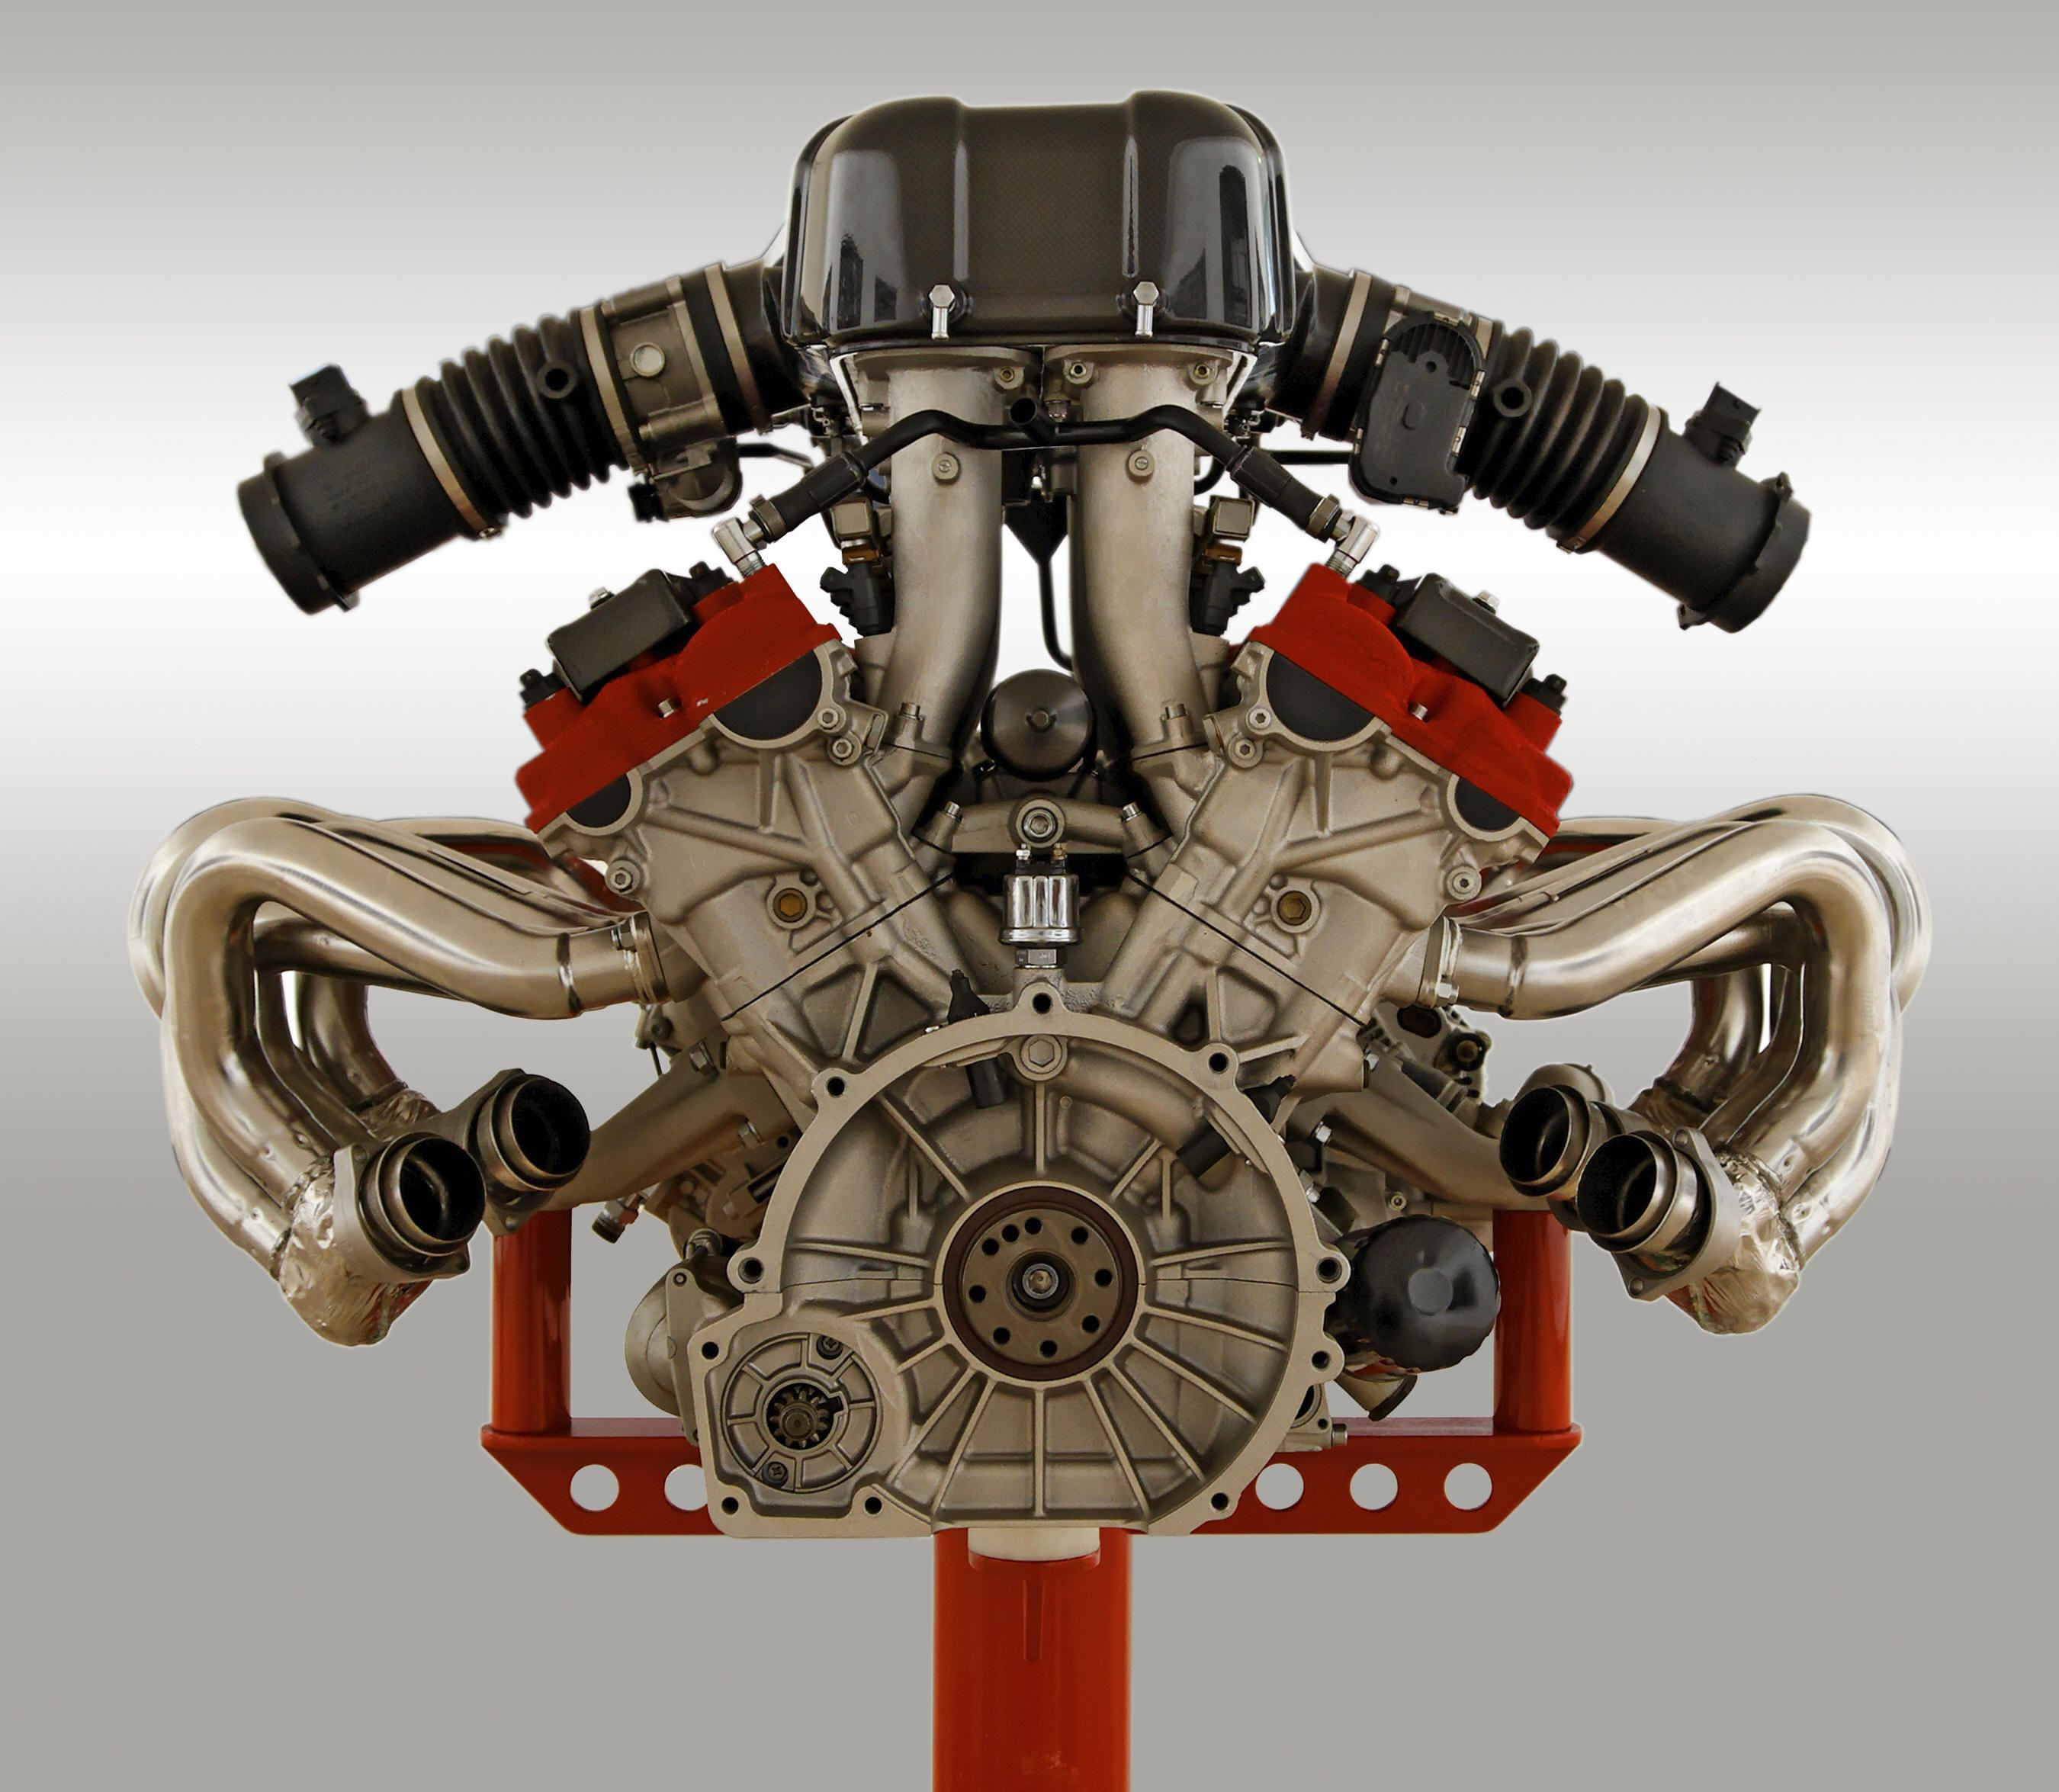 Best Car Engines